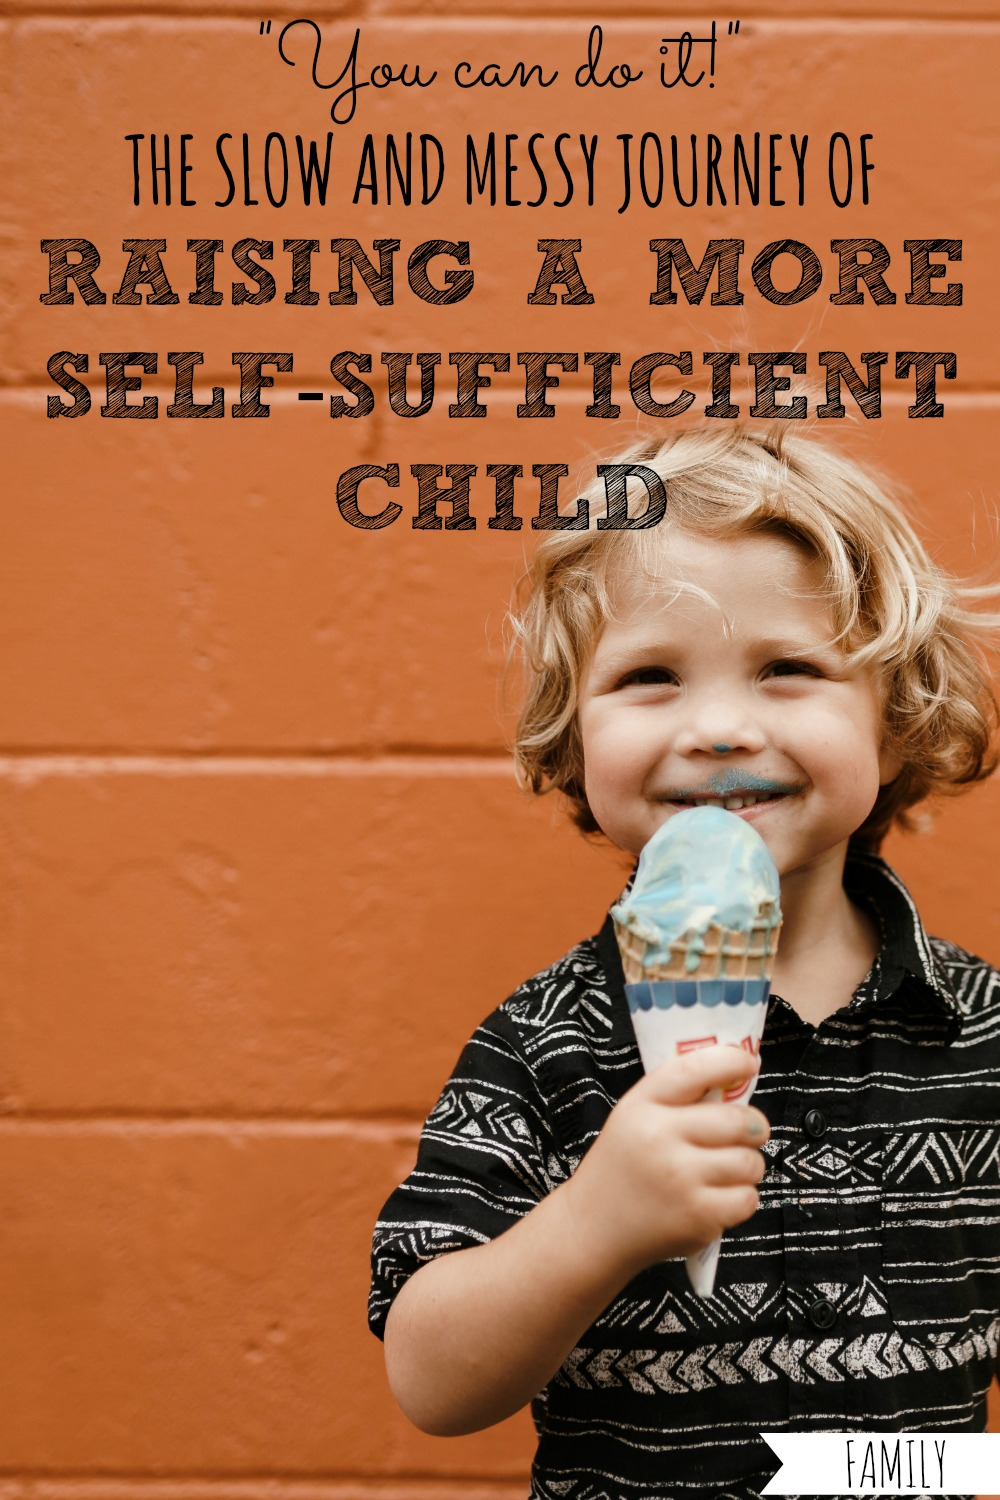 Want to raise a more self-sufficient child? Here's how I'm encouraging my toddler to try more things on her own, and building her confidence along the way! #self #sufficient #self-sufficient #confident #confidence #independent #independence #child #children #kid #kids #raising #toddler #toddlers #parent #parents #parenting #parenthood #slow #messy #frustrating #journey